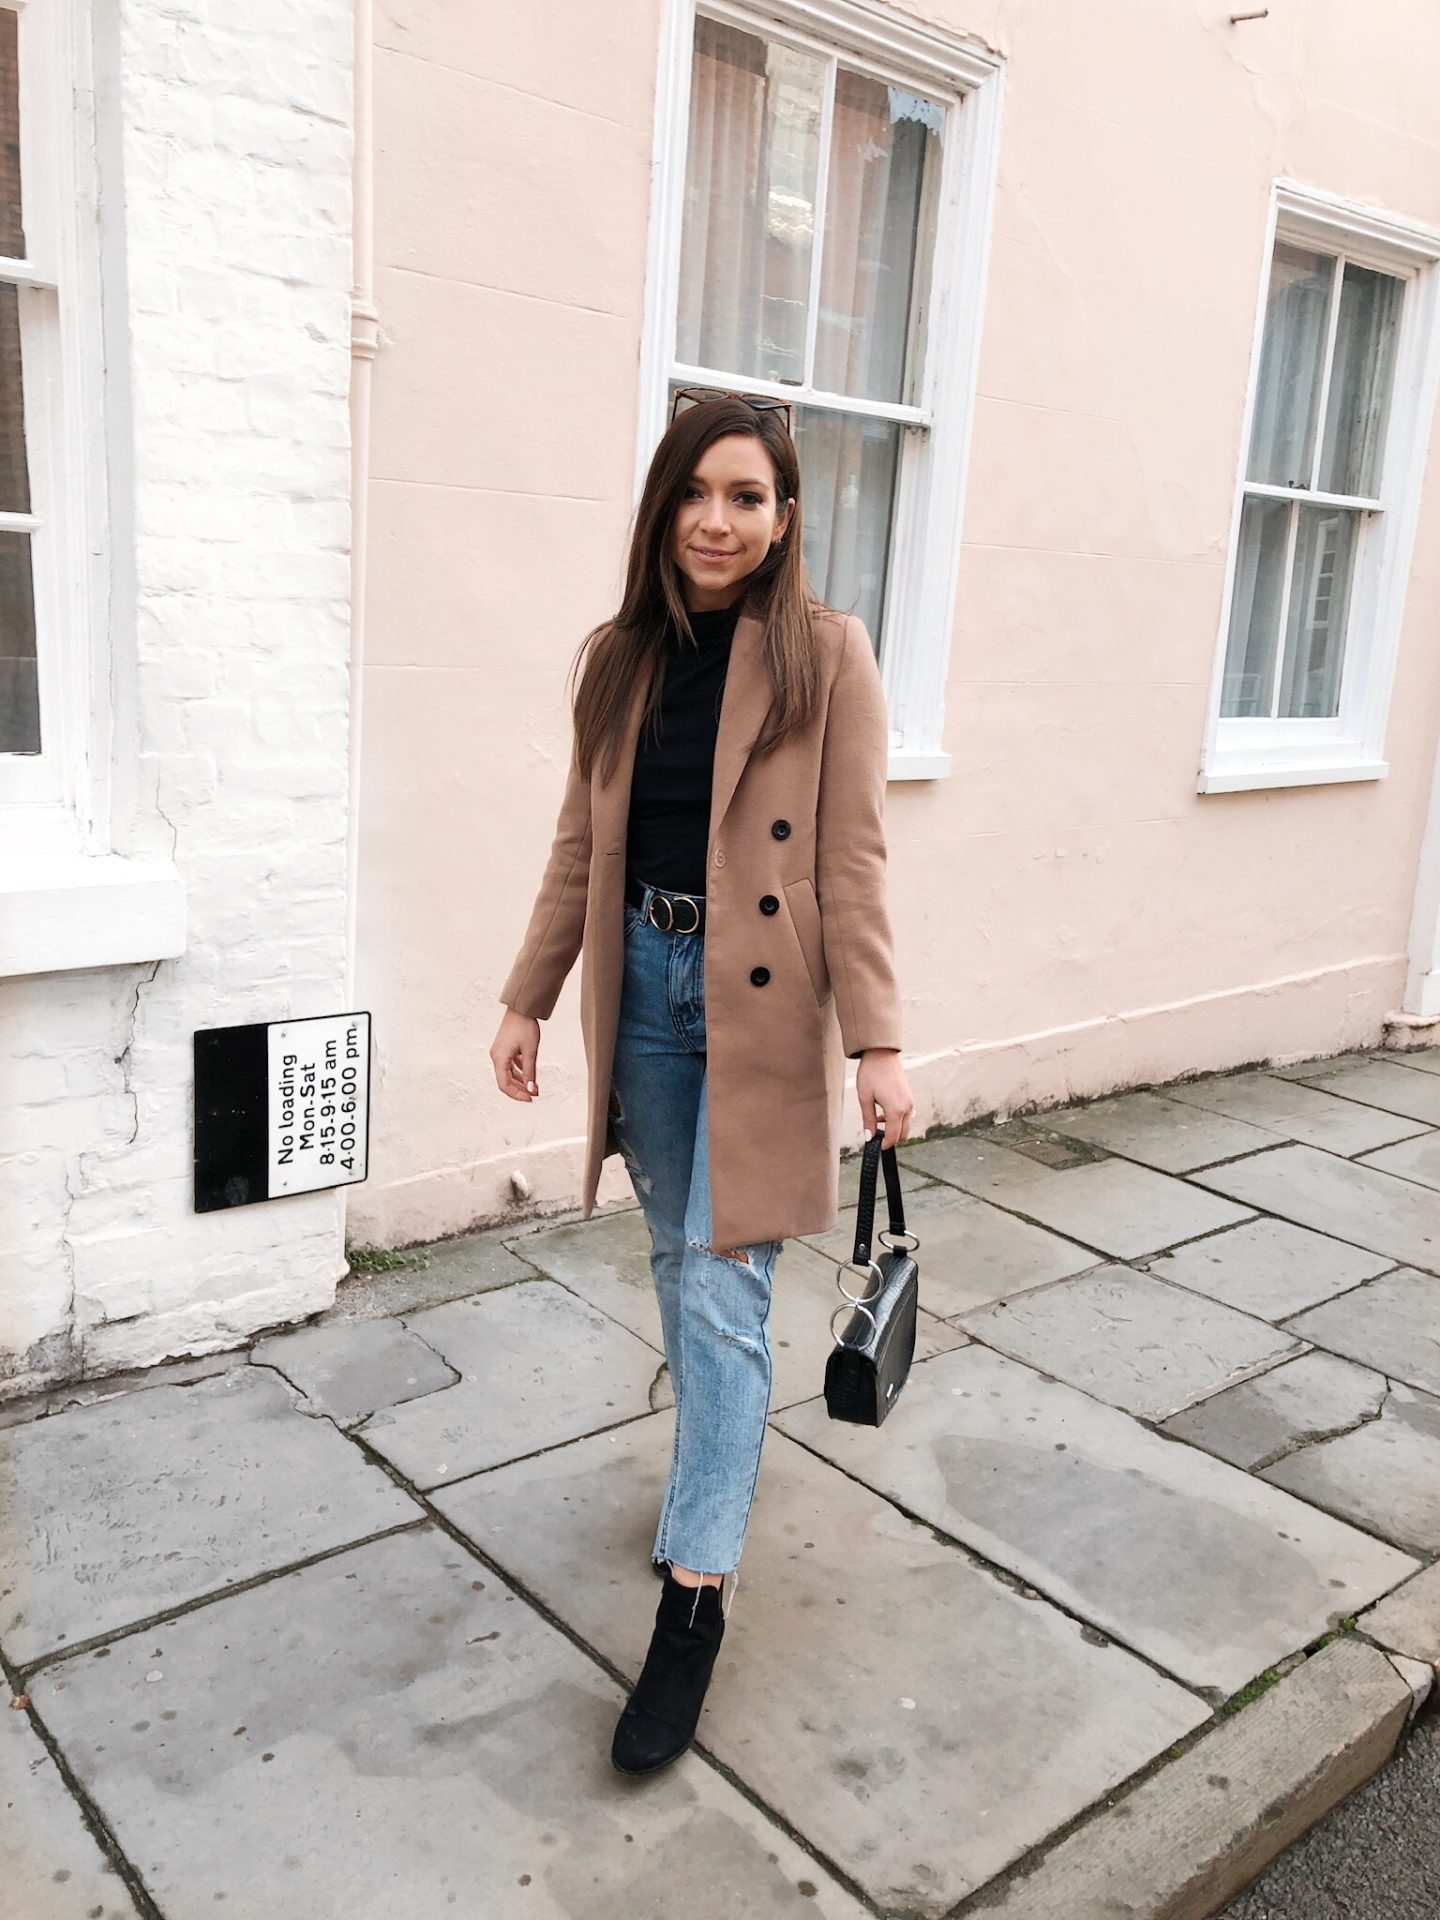 camel coat, chic coat, how to look chic on a budget, boohoo camel coat